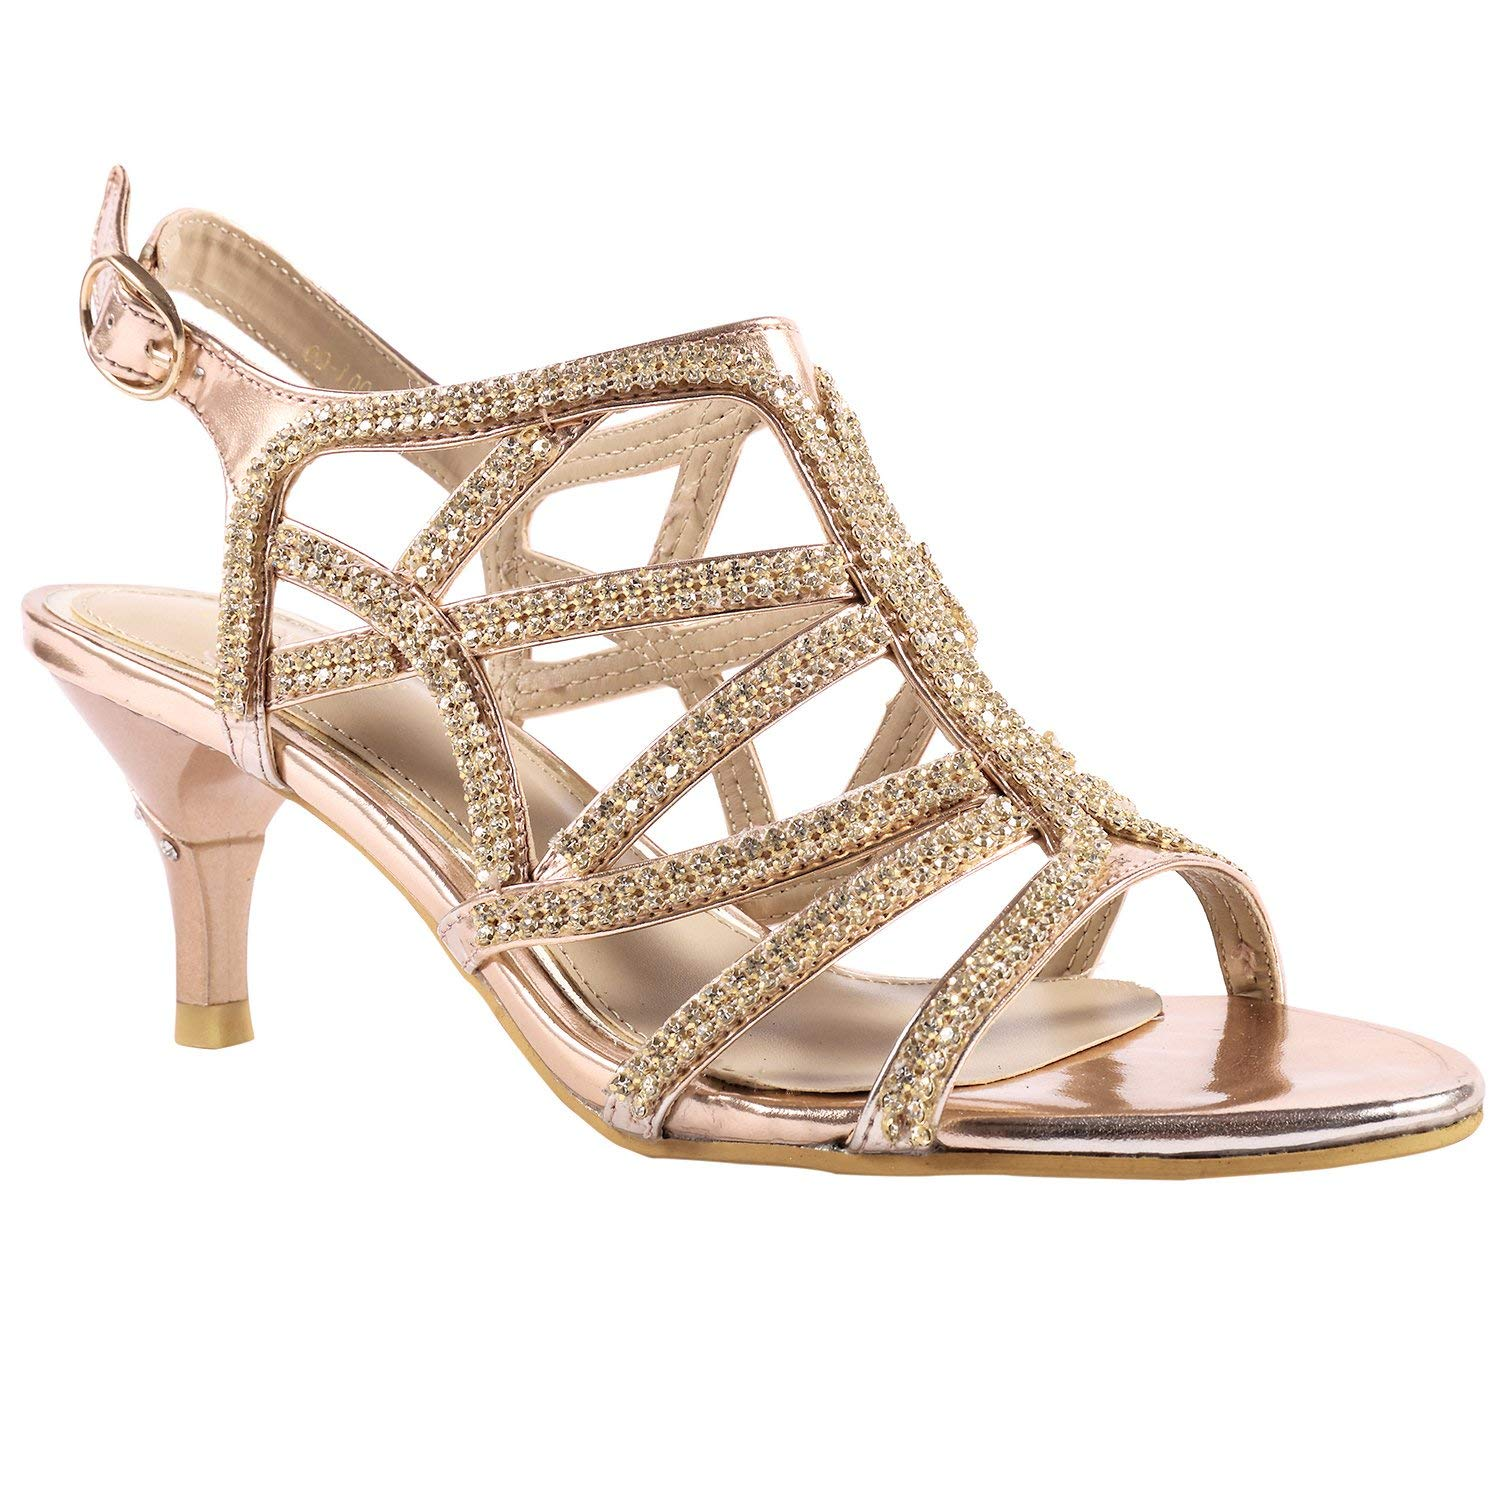 d4442ea53d3e Get Quotations · Lara s Womens Rhinestone Prom Dress Shoes Wedding Sandals  Low Heel